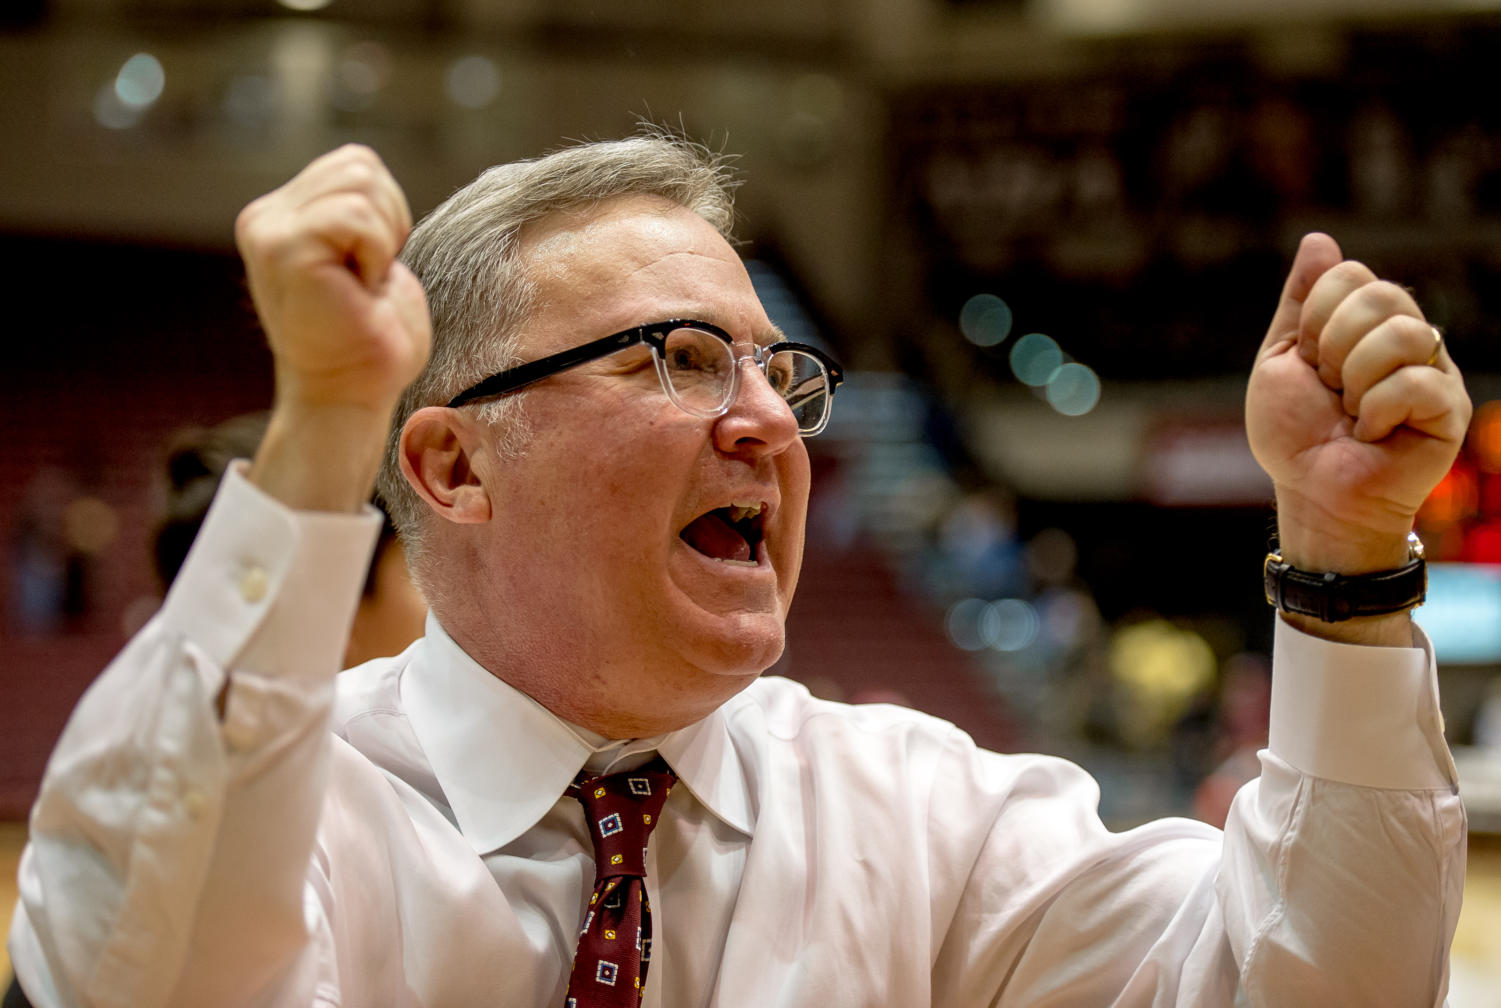 Head+coach+Barry+Hinson+celebrates+a+win+Sunday%2C+Jan.+21%2C+2018%2C+during+the+Salukis%27+64-53+victory+over+the+University+of+Northern+Iowa+Panthers+at+SIU+Arena.+%28Brian+Munoz+%7C+%40BrianMMunoz%29